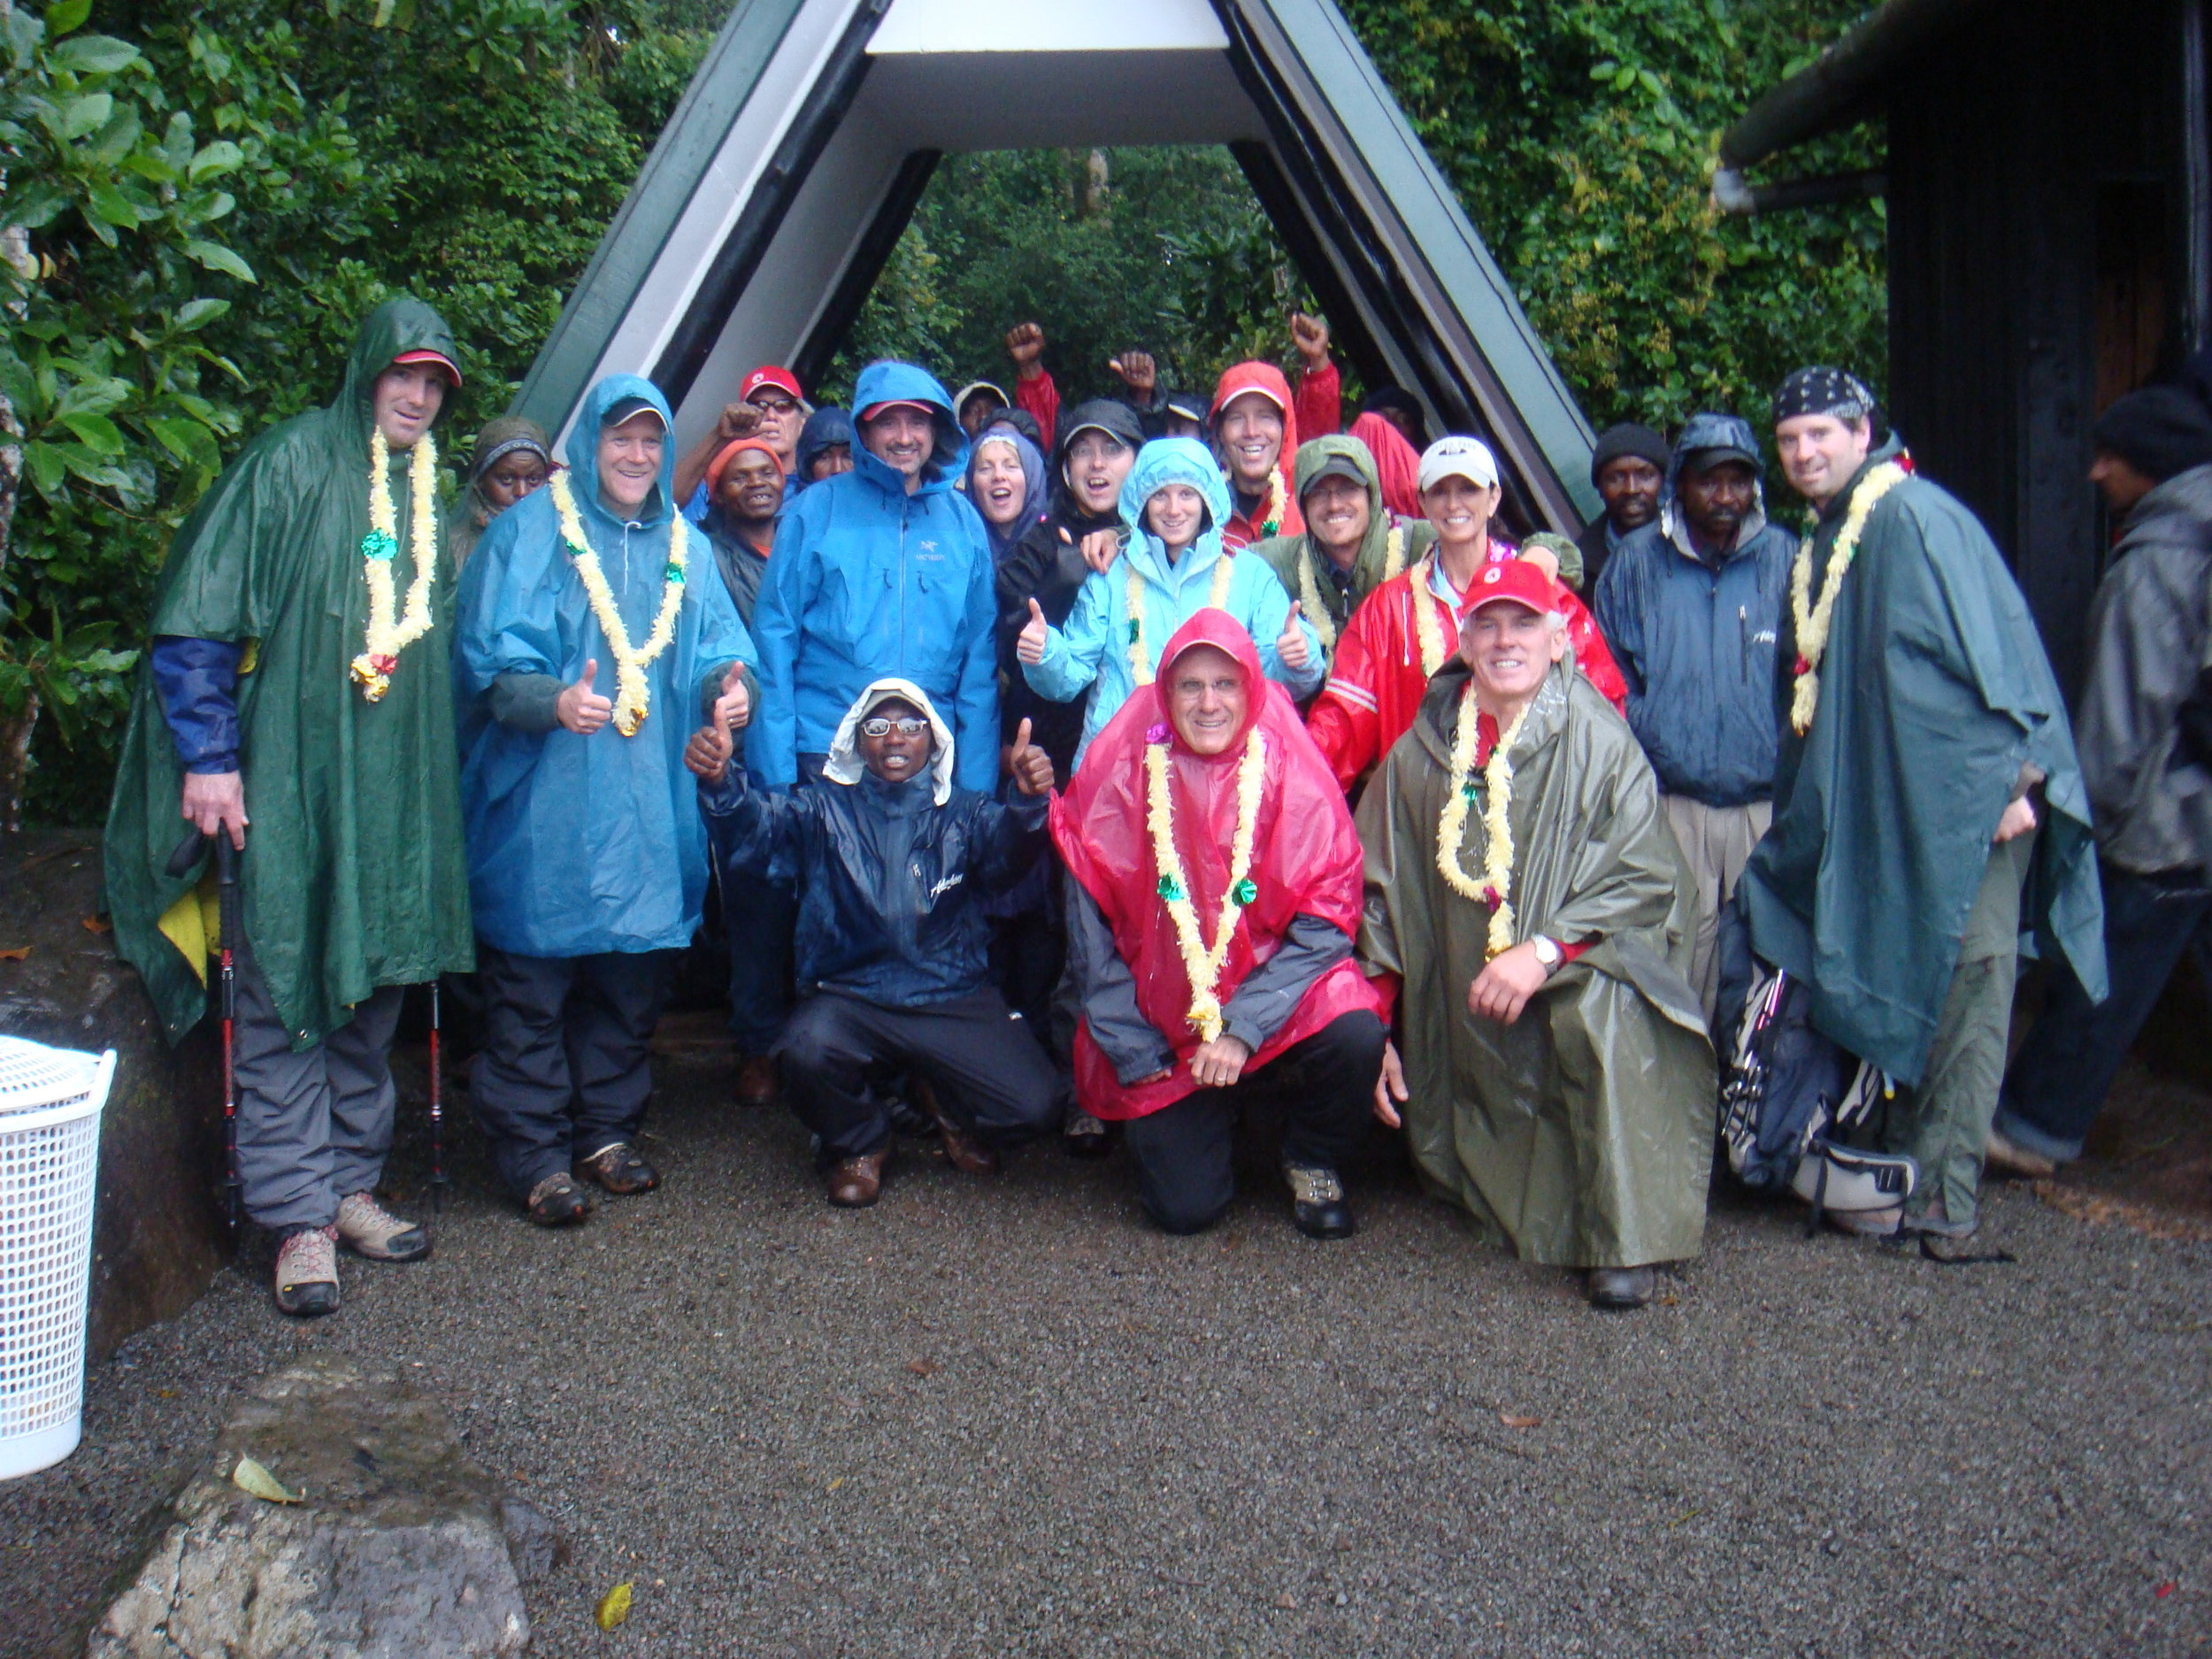 Our group about to start our acsent